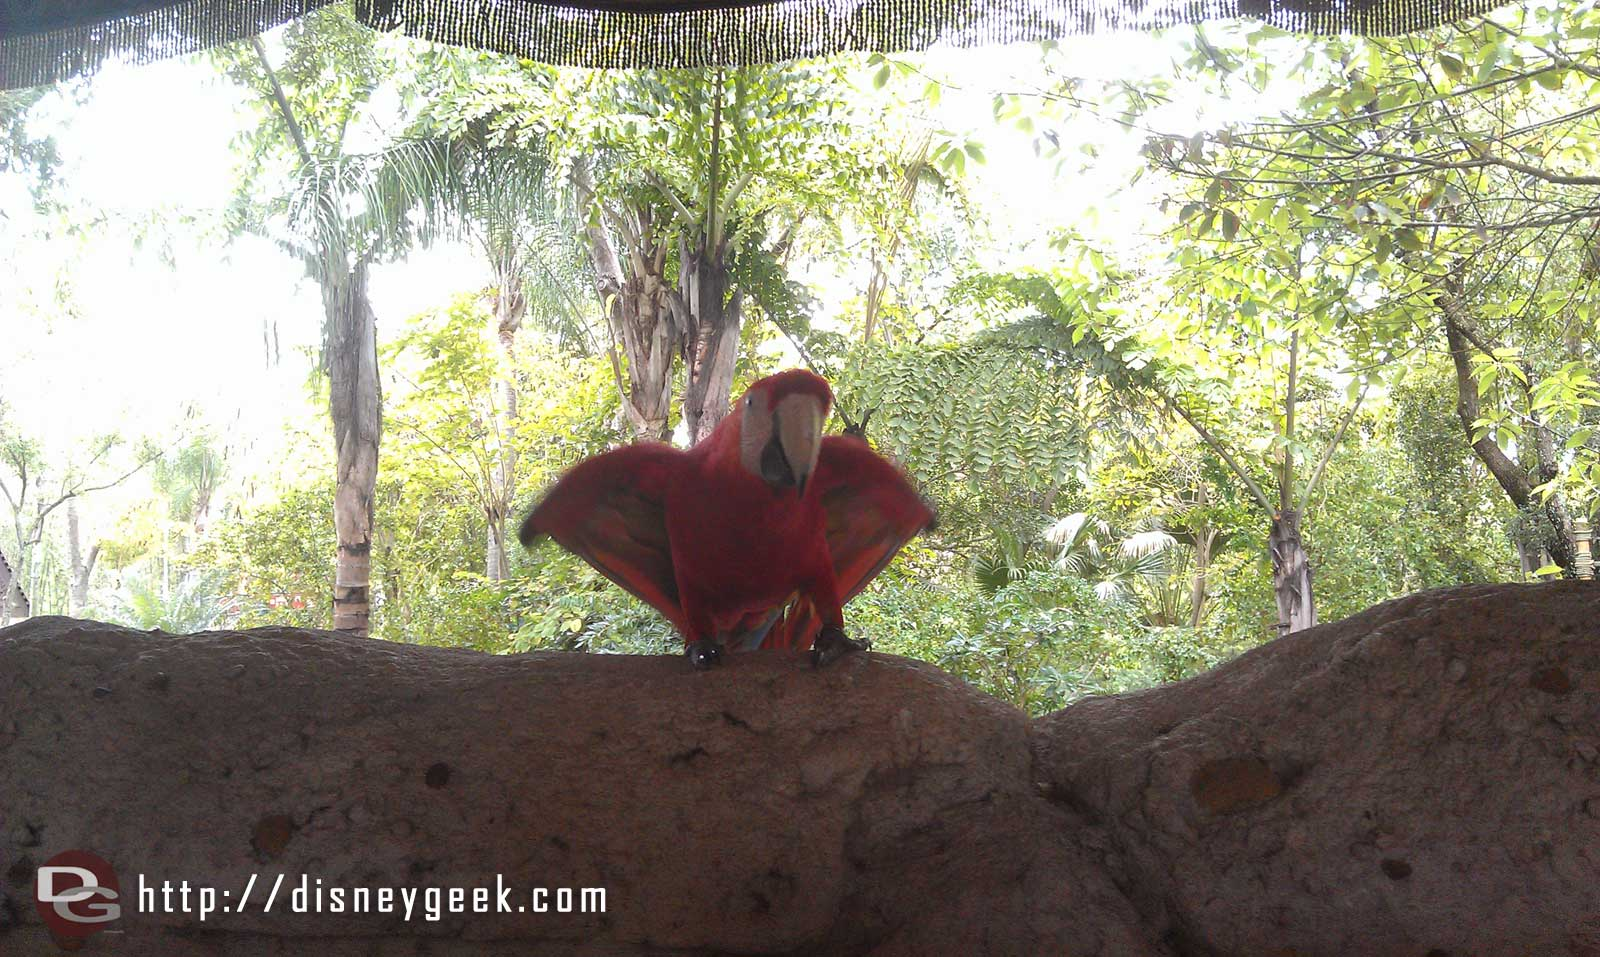 Next up Flights of Wonder – a macaw out for a preshow #DAK15